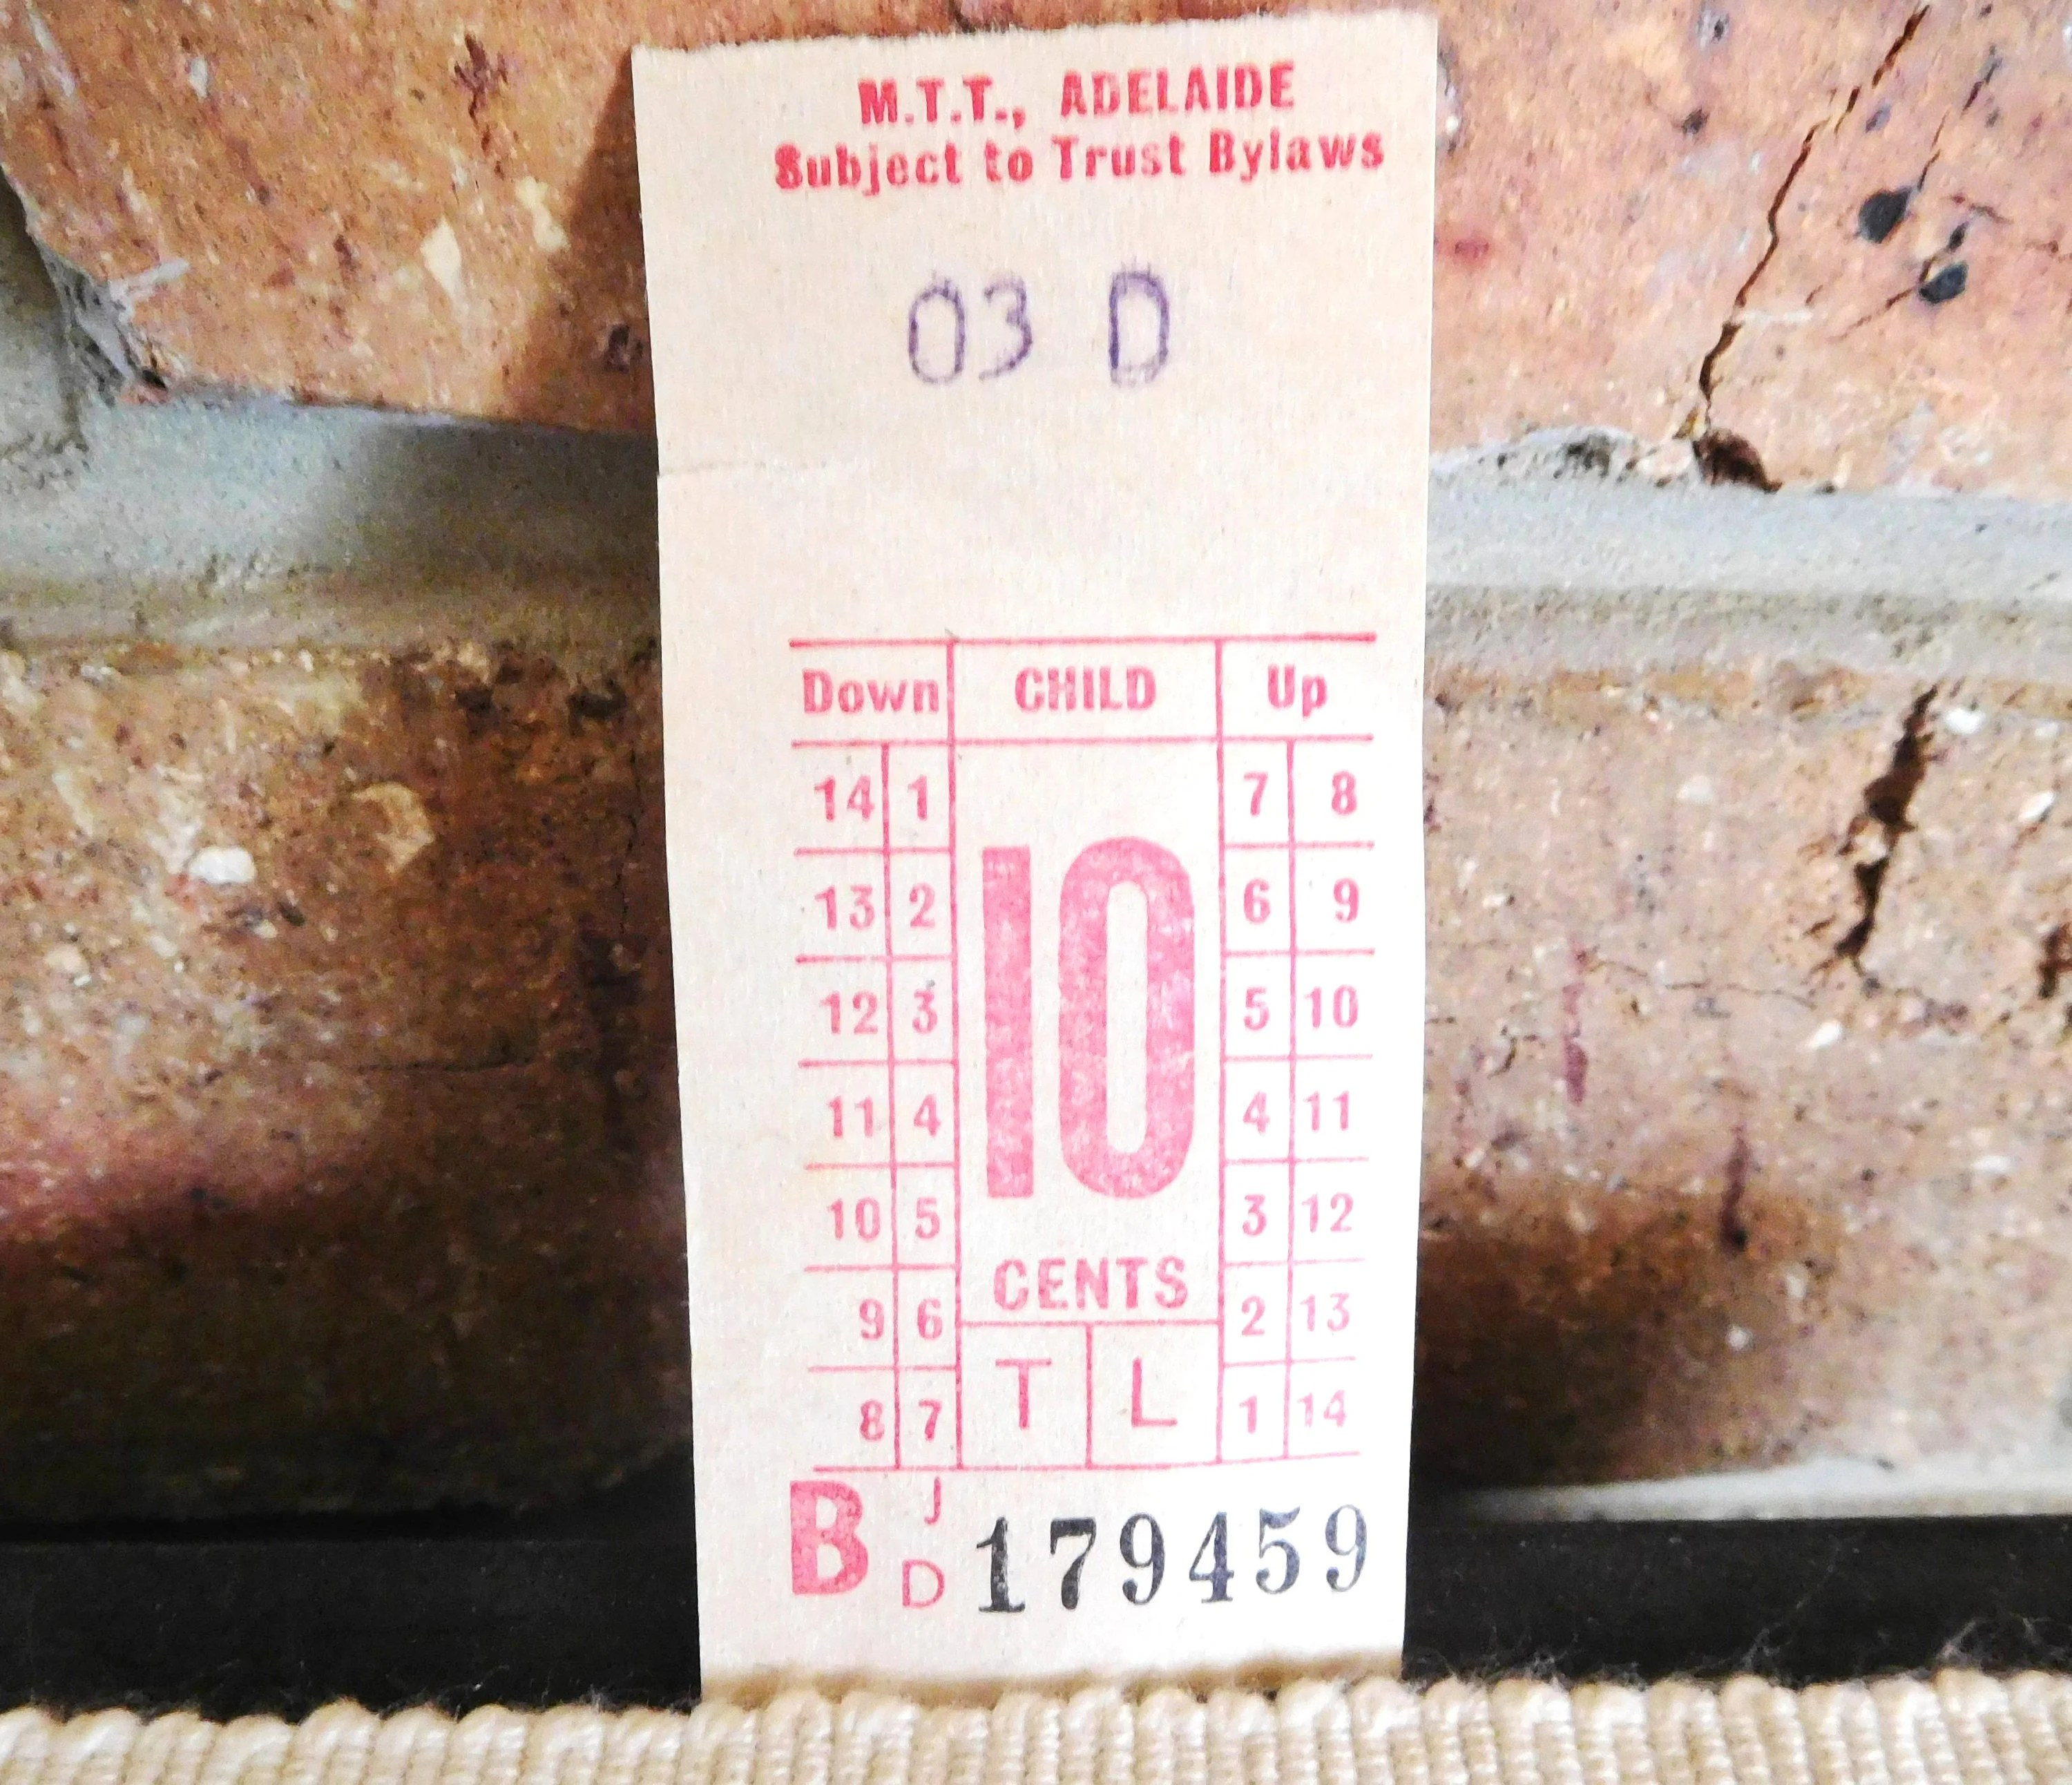 Chalet Leal 1969 Adelaide South Australia Child S Mtt Leal Bus Ticket 10c Collectable